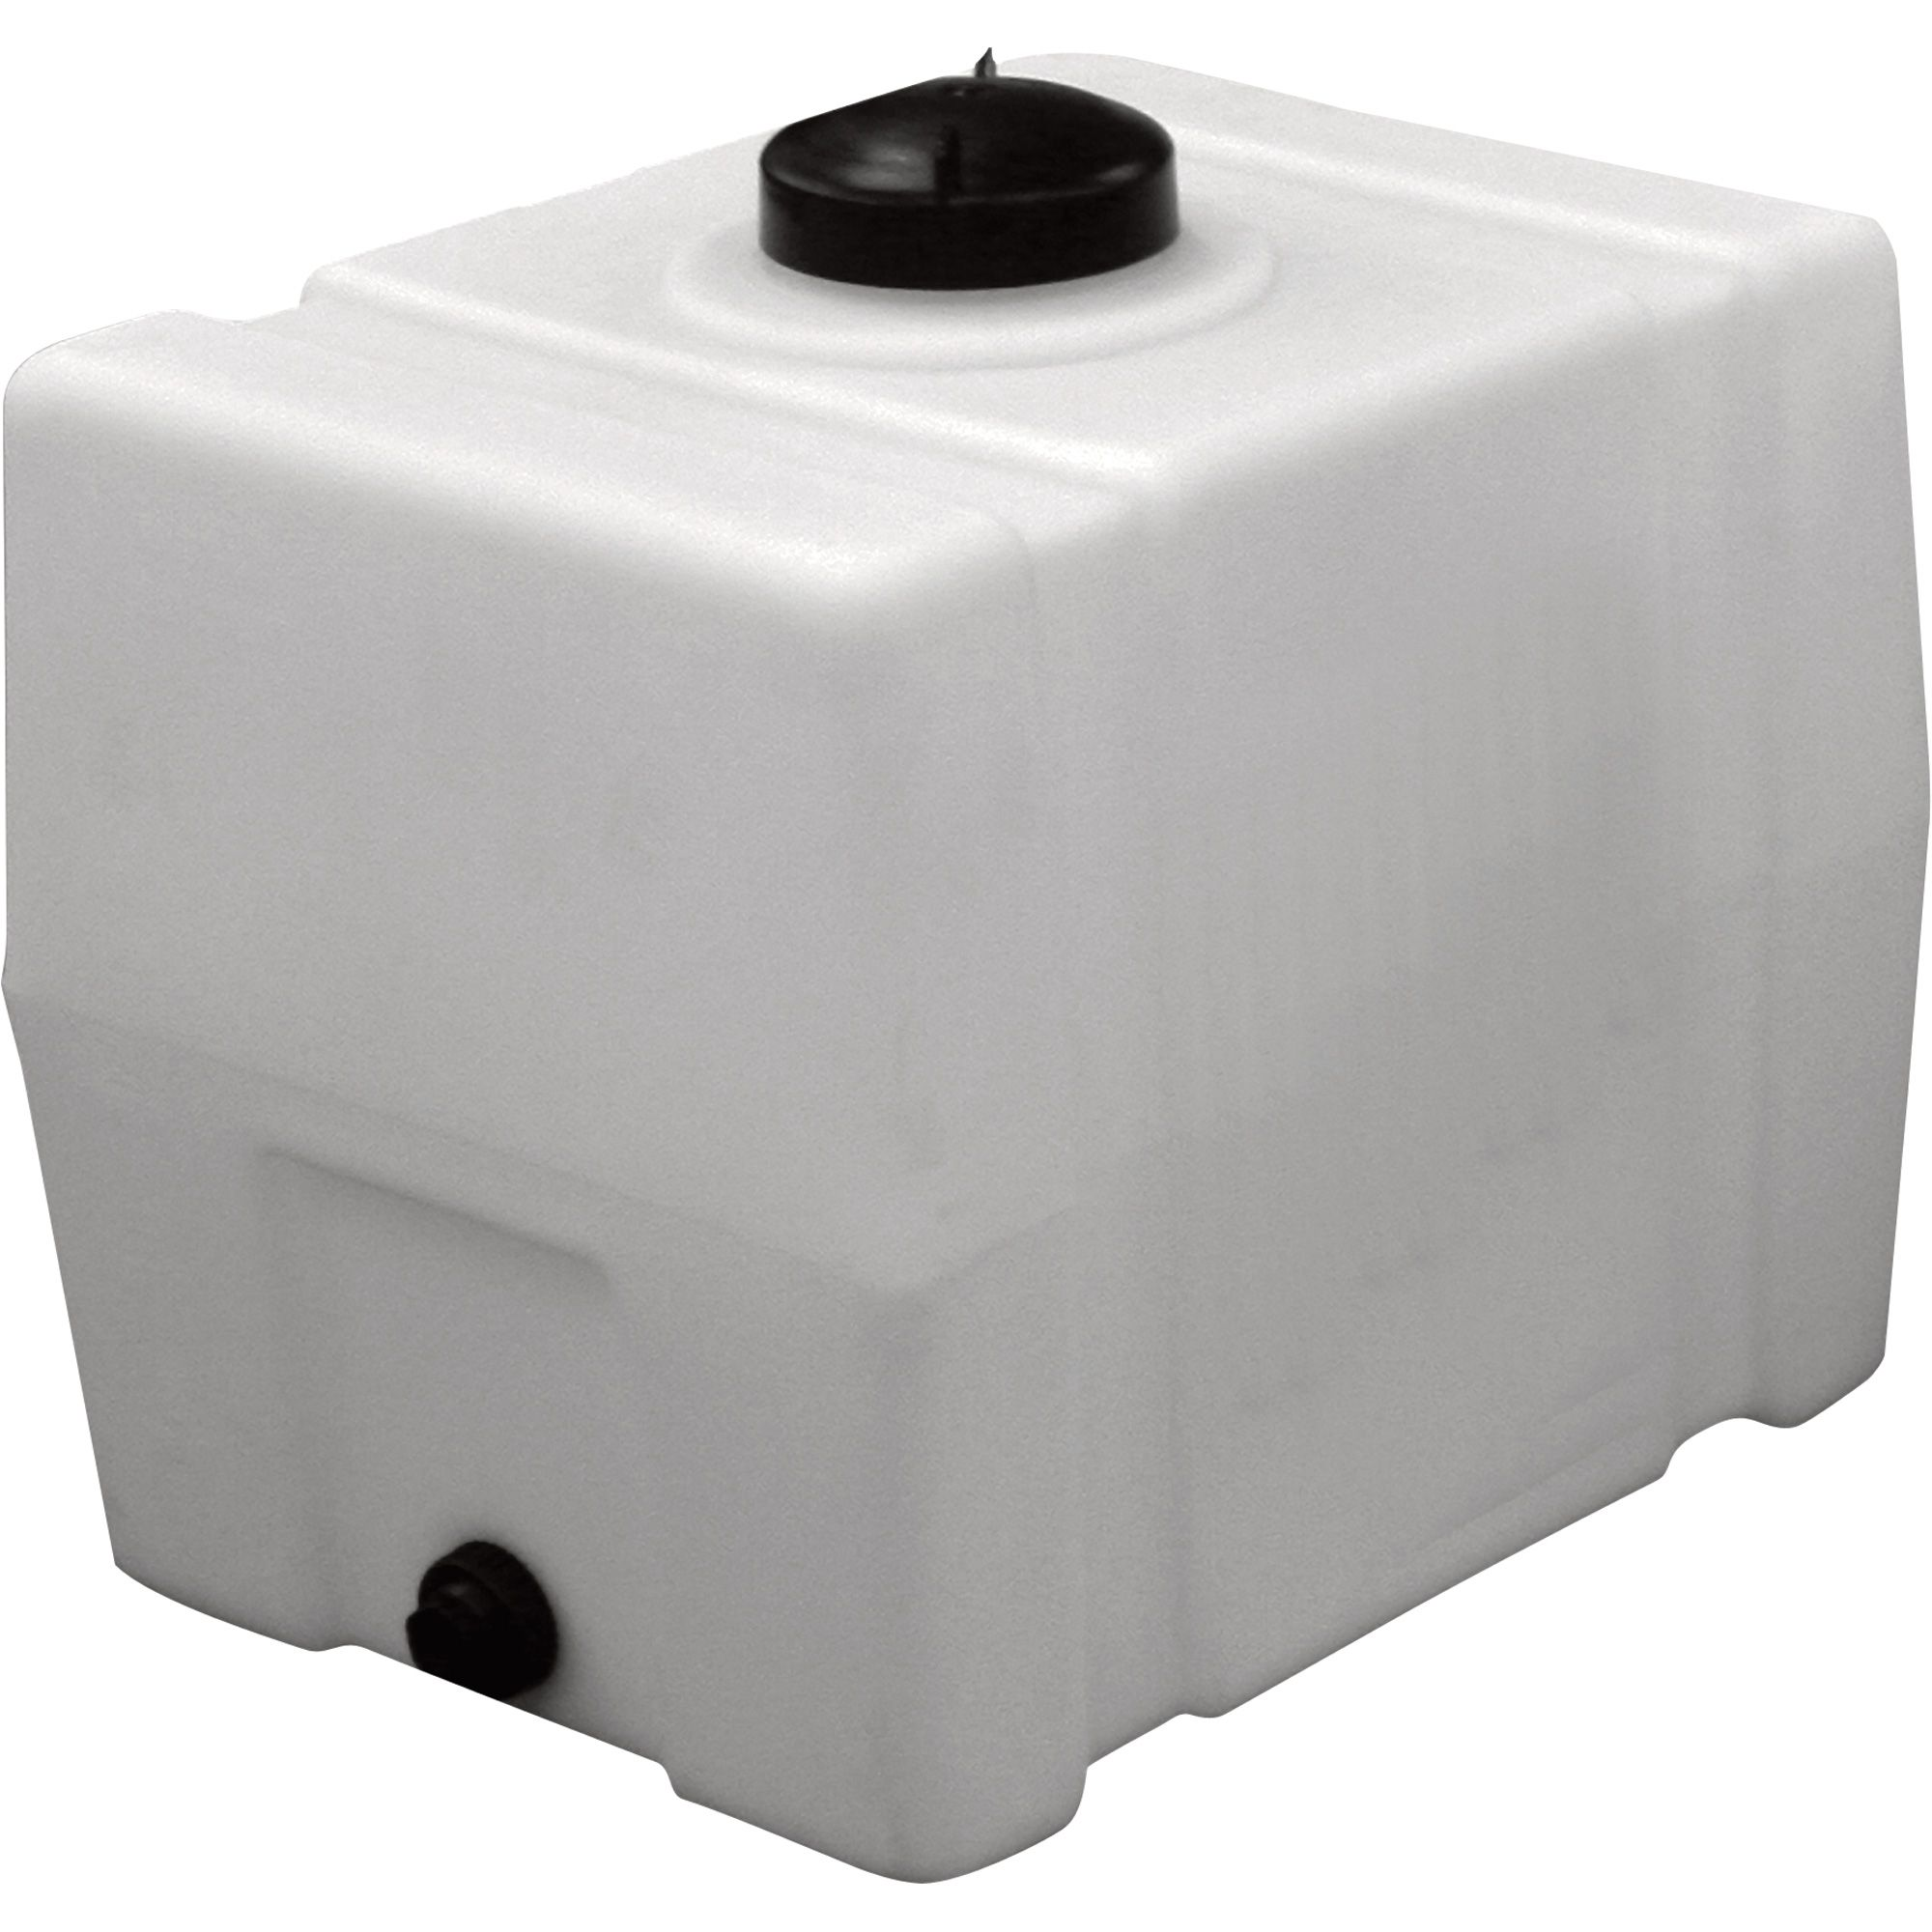 Romotech Poly Storage Tank Square 100 Gallon Capacity Model 2392 Storage Tank Storage Tanks Water Storage